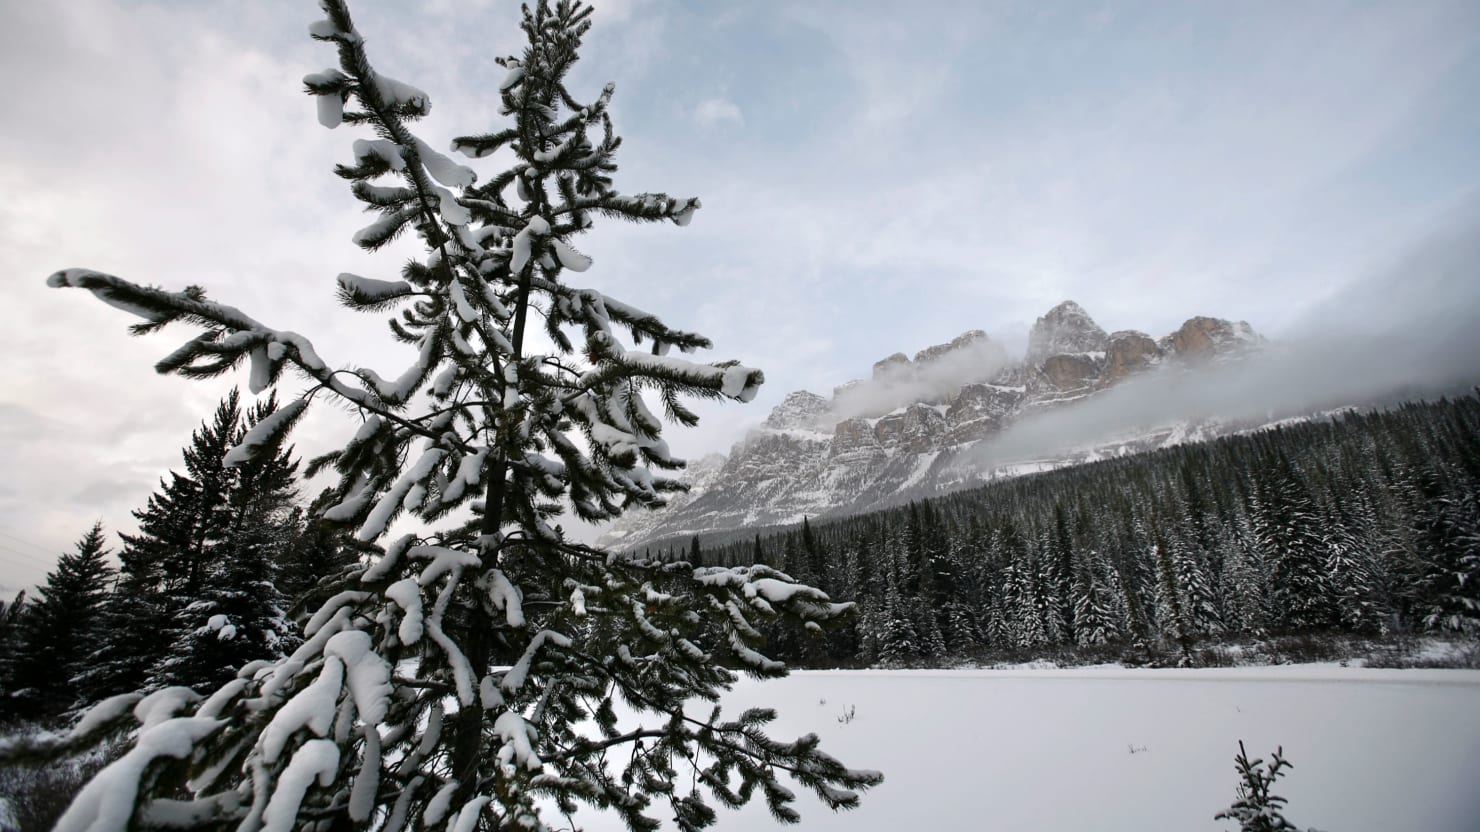 Bodies of Three Expert Climbers Found in Canada's Banff National Park